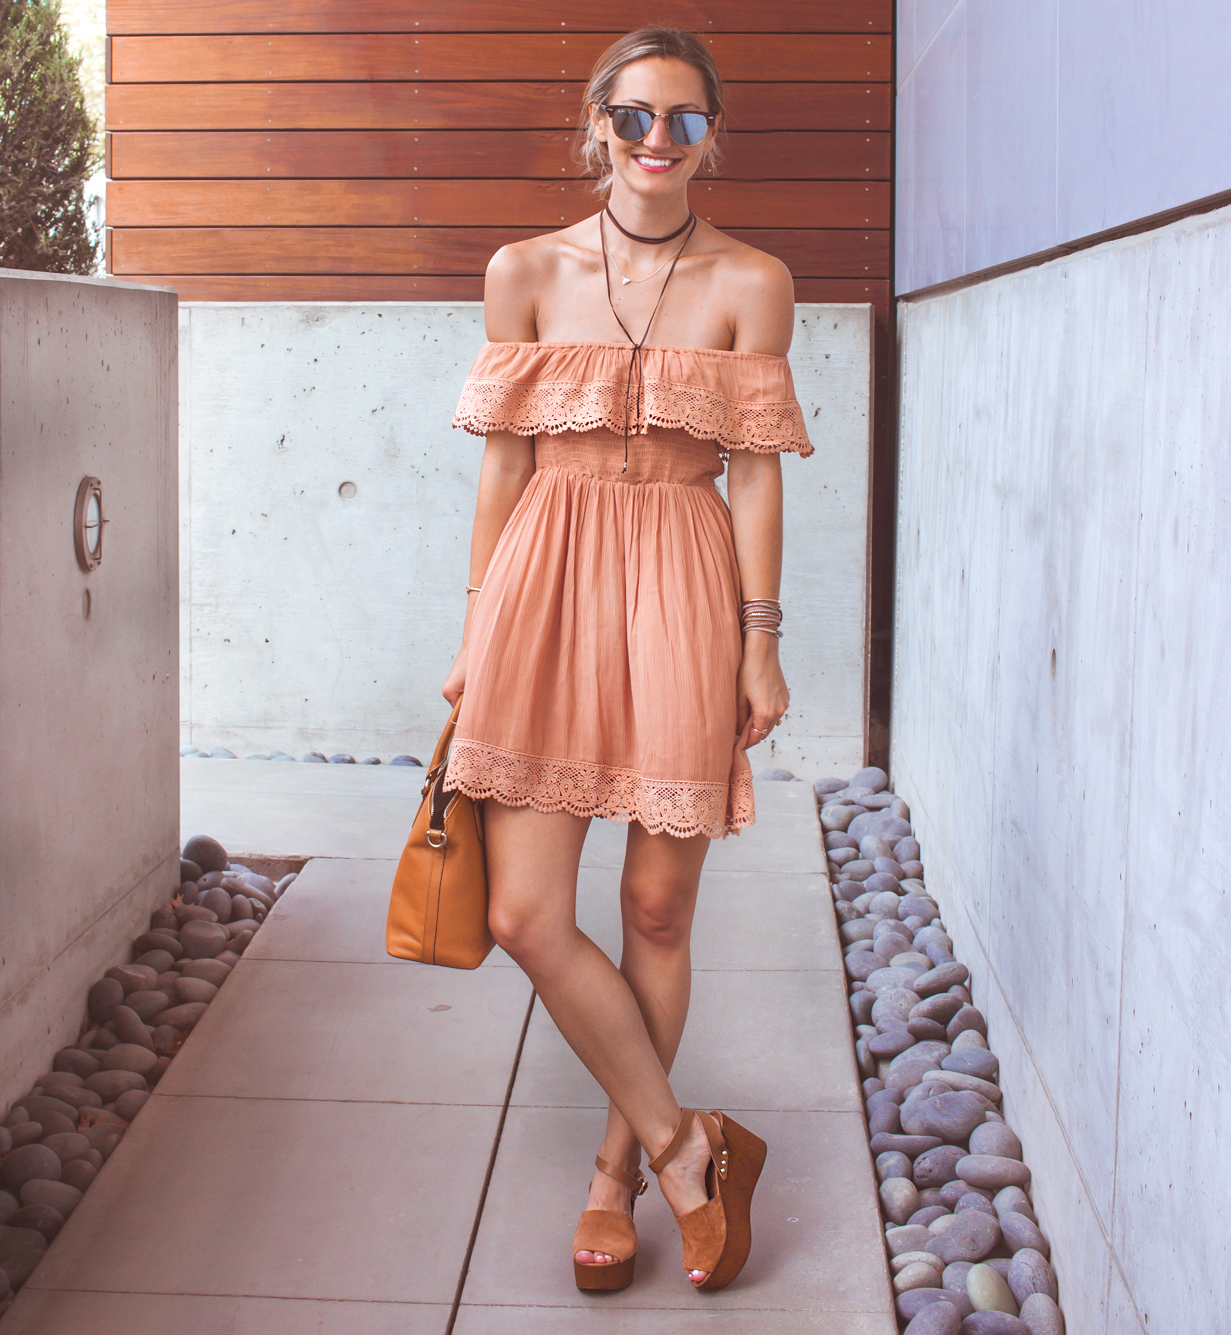 livvyland-blog-olivia-watson-austin-texas-fashion-lifestyle-blogger-peach-coral-lace-off-shoulder-dress-platform-wedges-summer-outfit-4